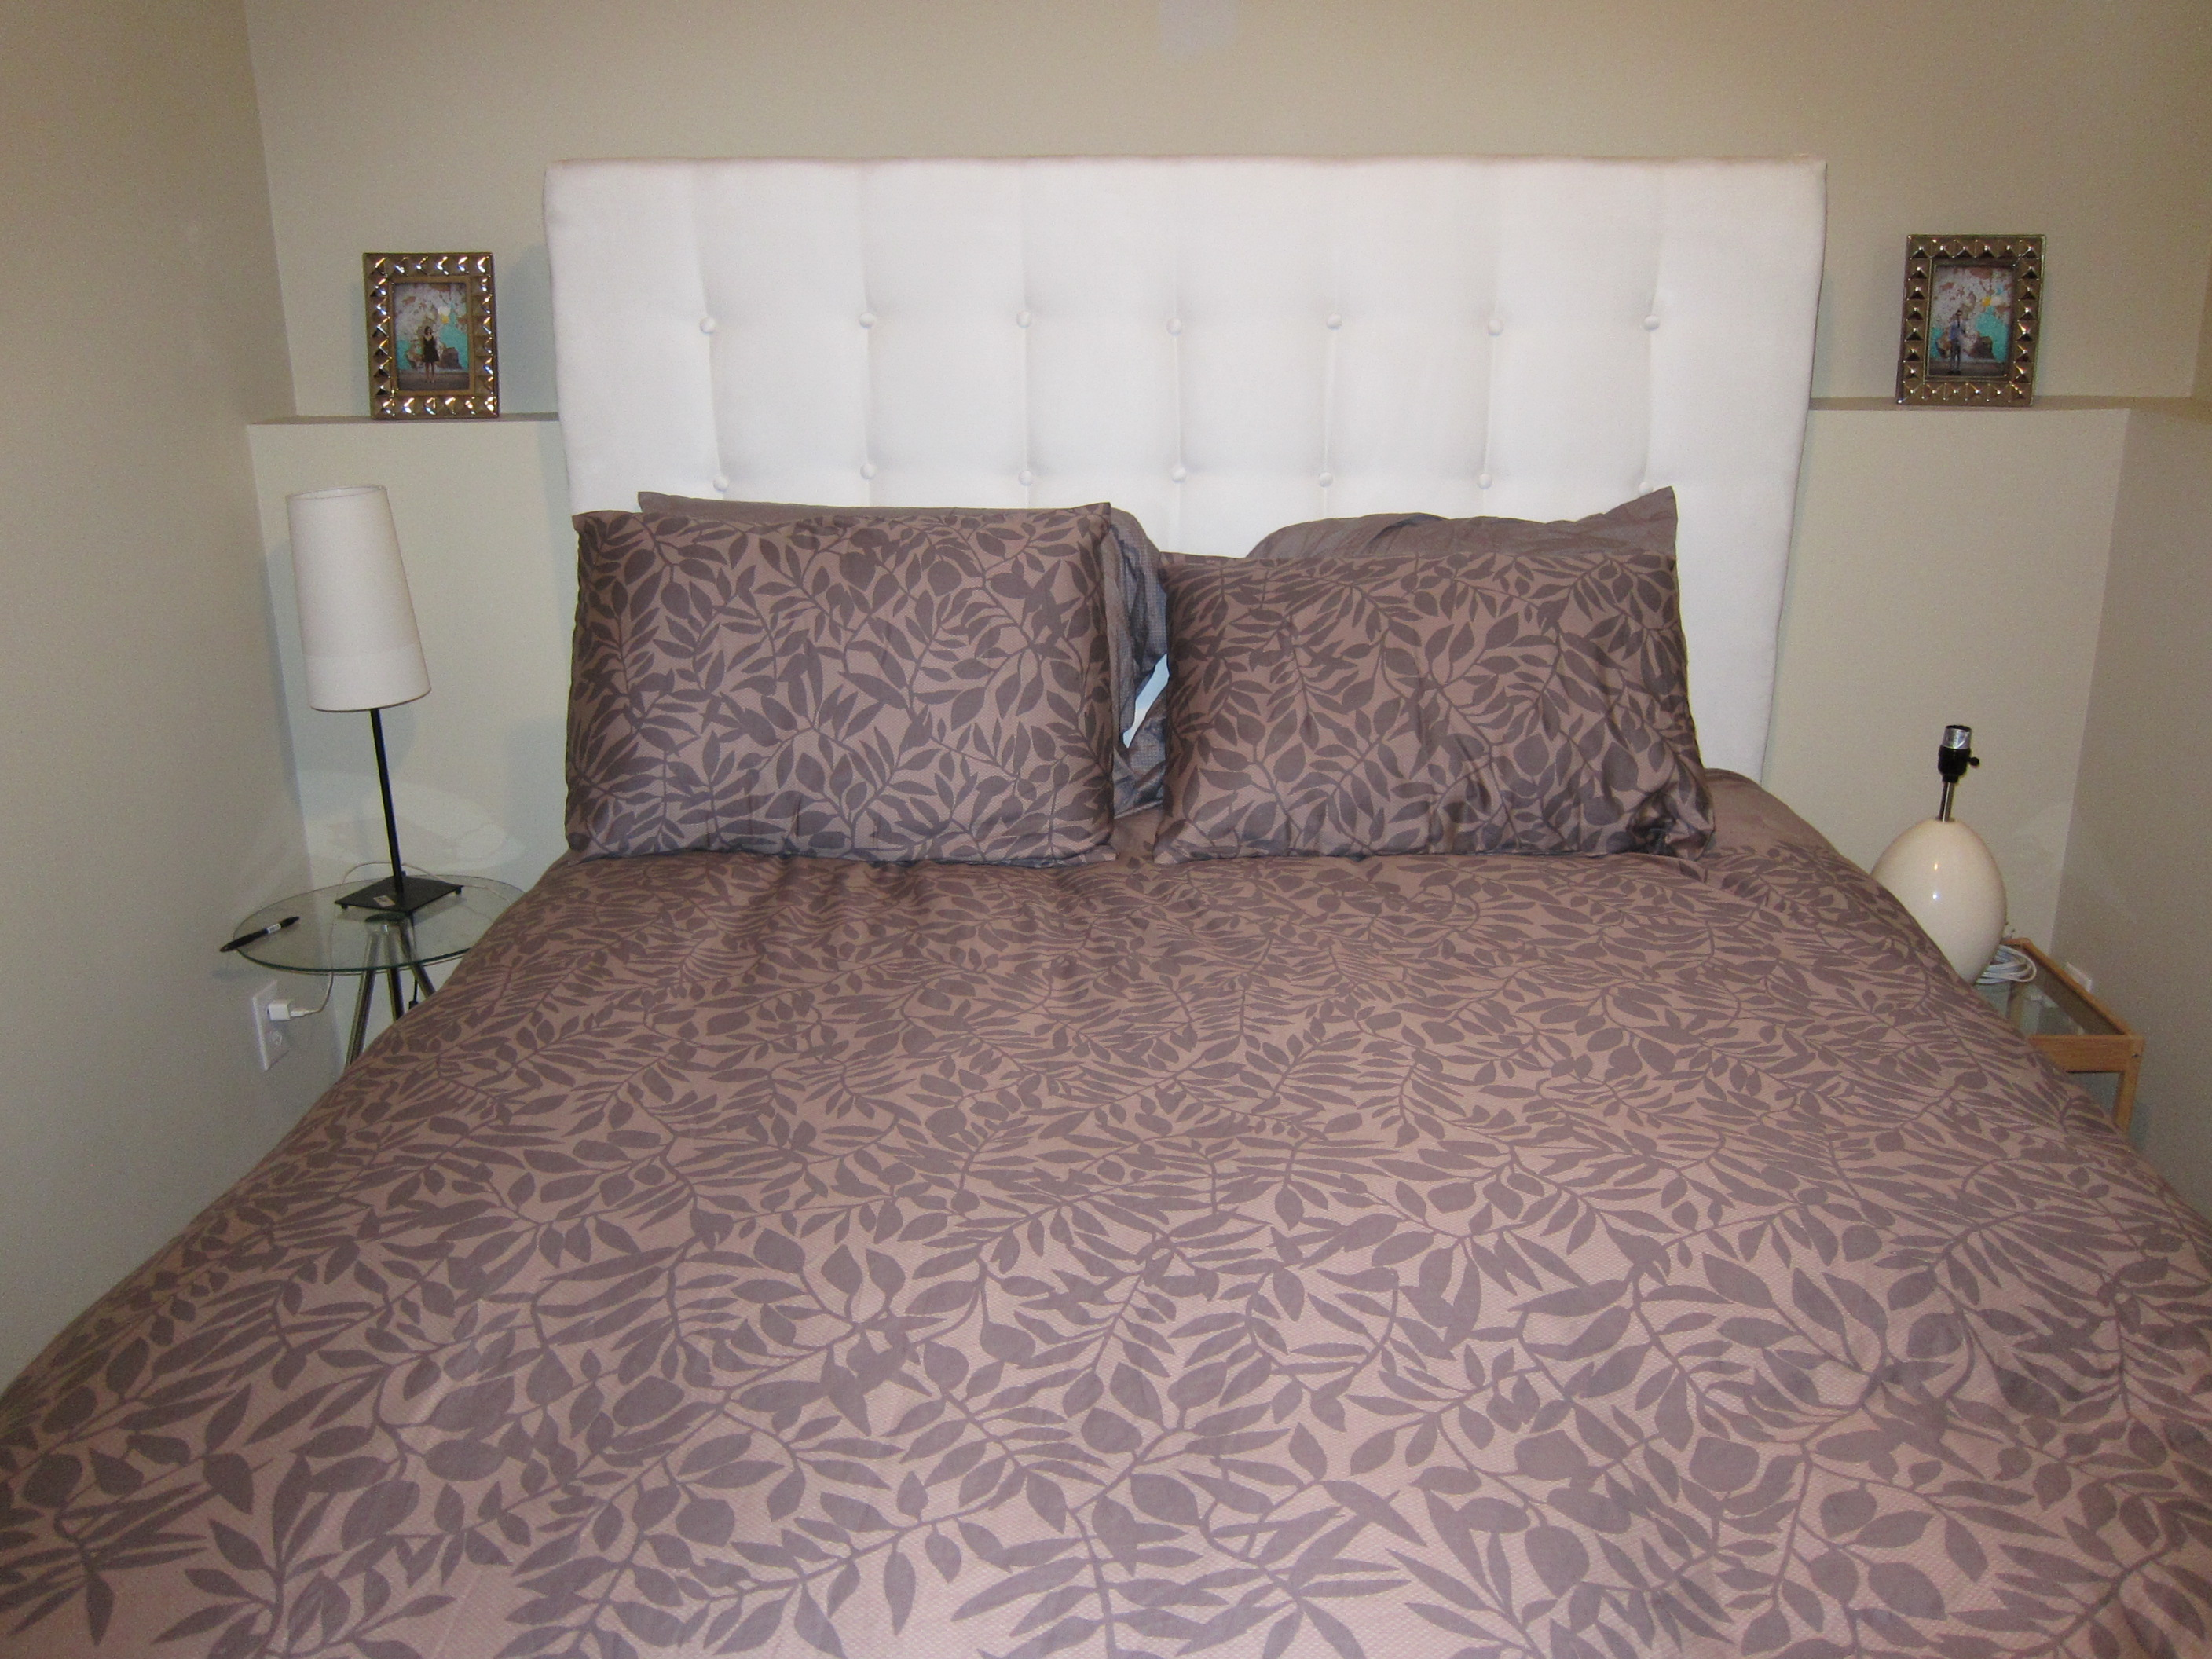 DIY: Upholstered Bed, The Finished Product - Passport to Wanderlust